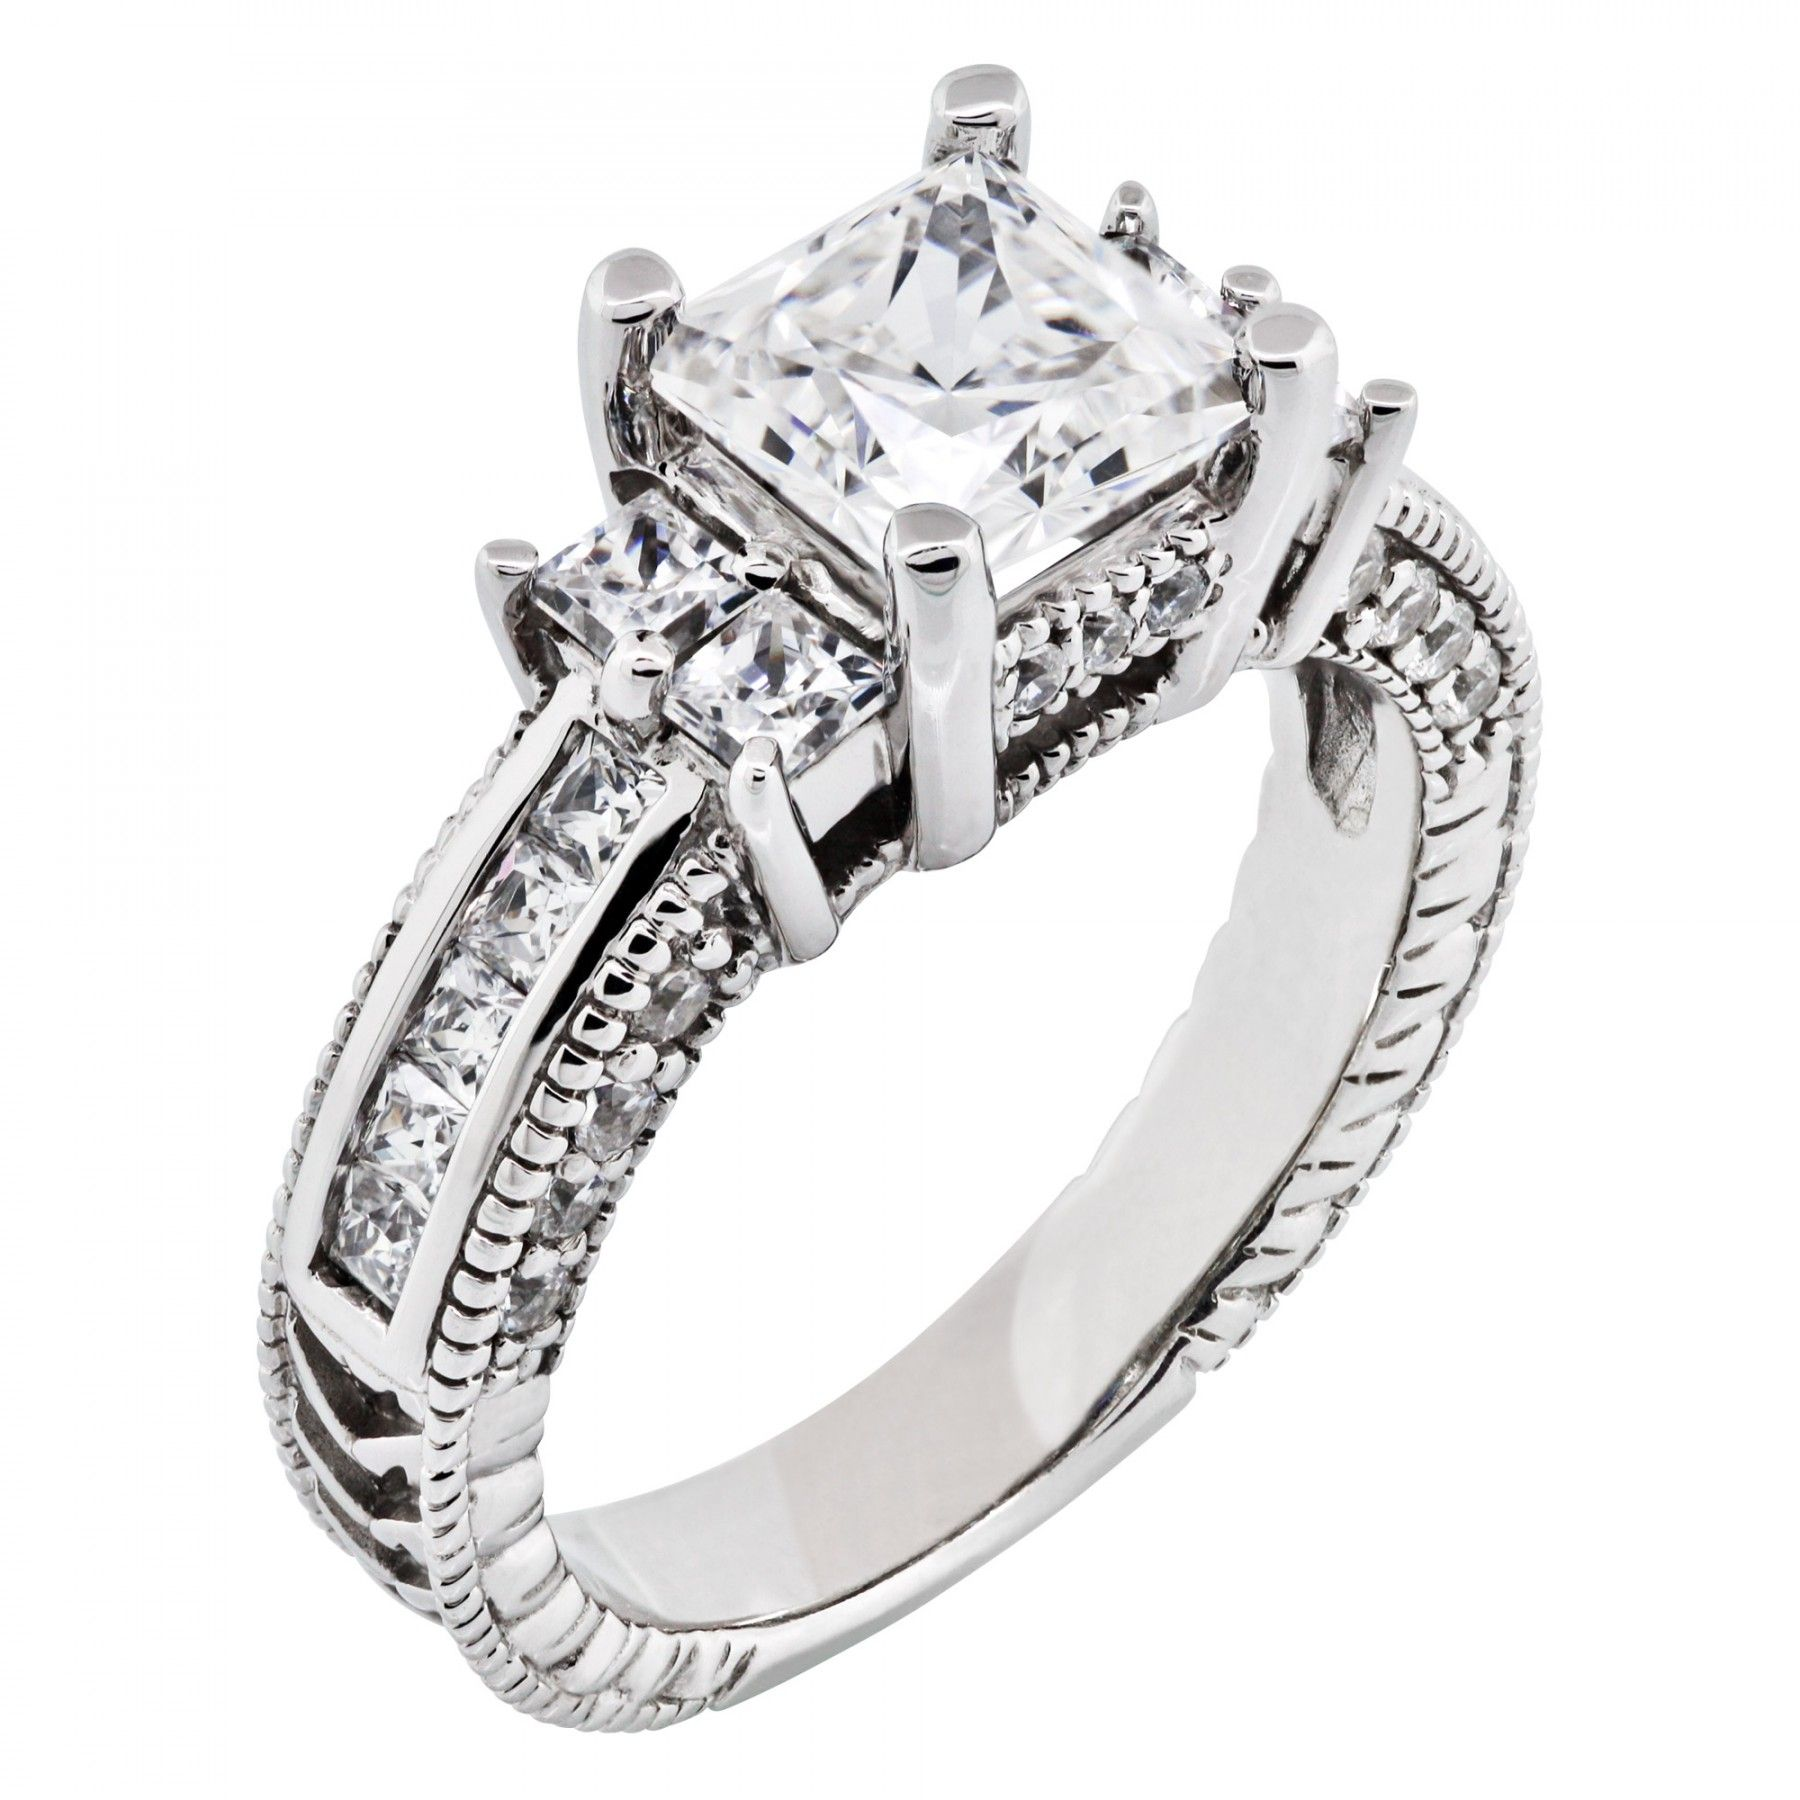 sparkling engagement artisan s affordable pin while ring rings profile and spectacularly glamorous this cost low